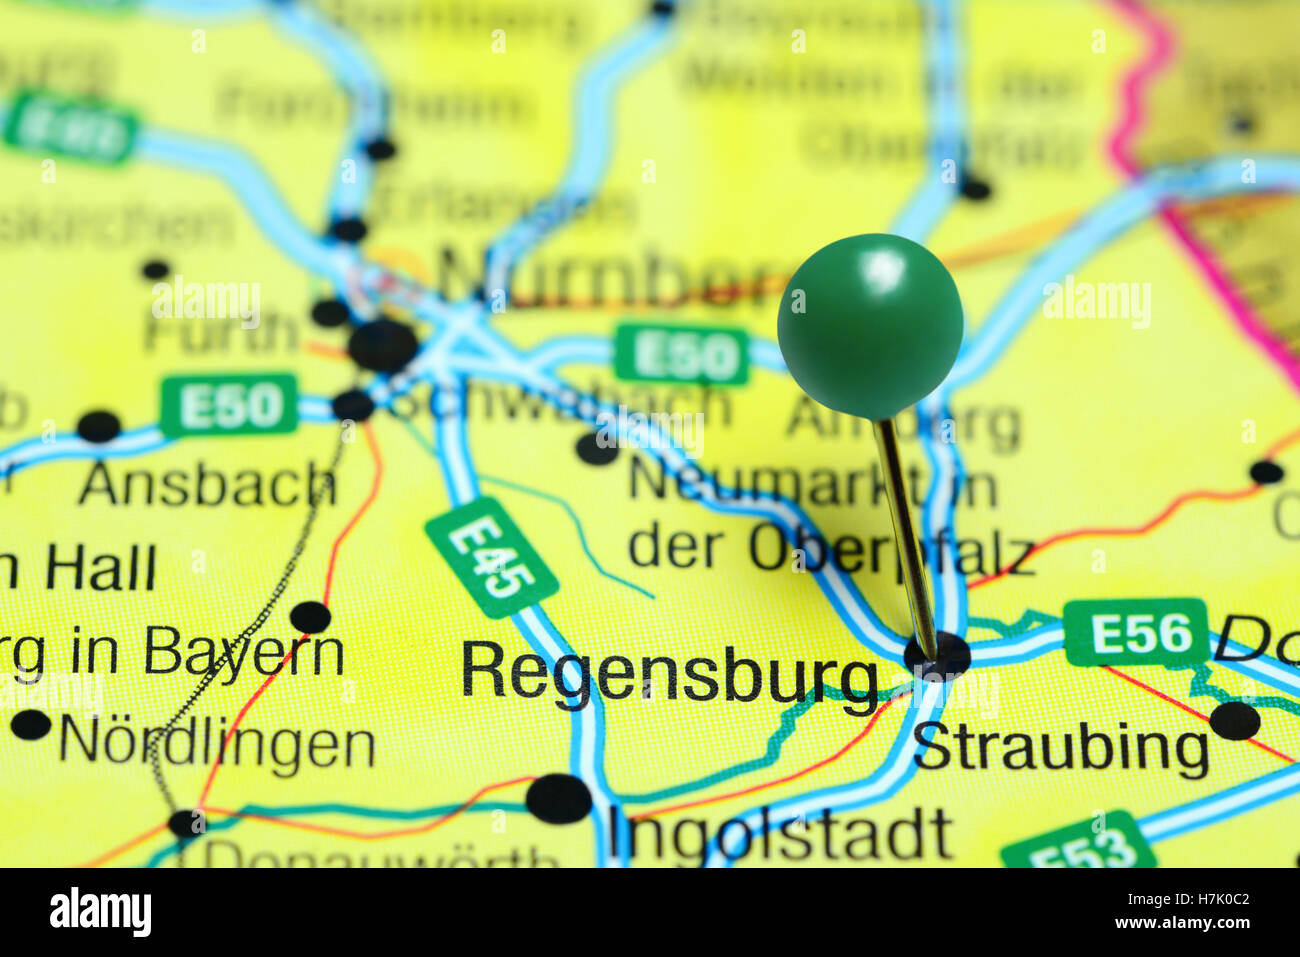 Regensburg Pinned On A Map Of Germany Stock Photo Royalty Free - Regensburg map